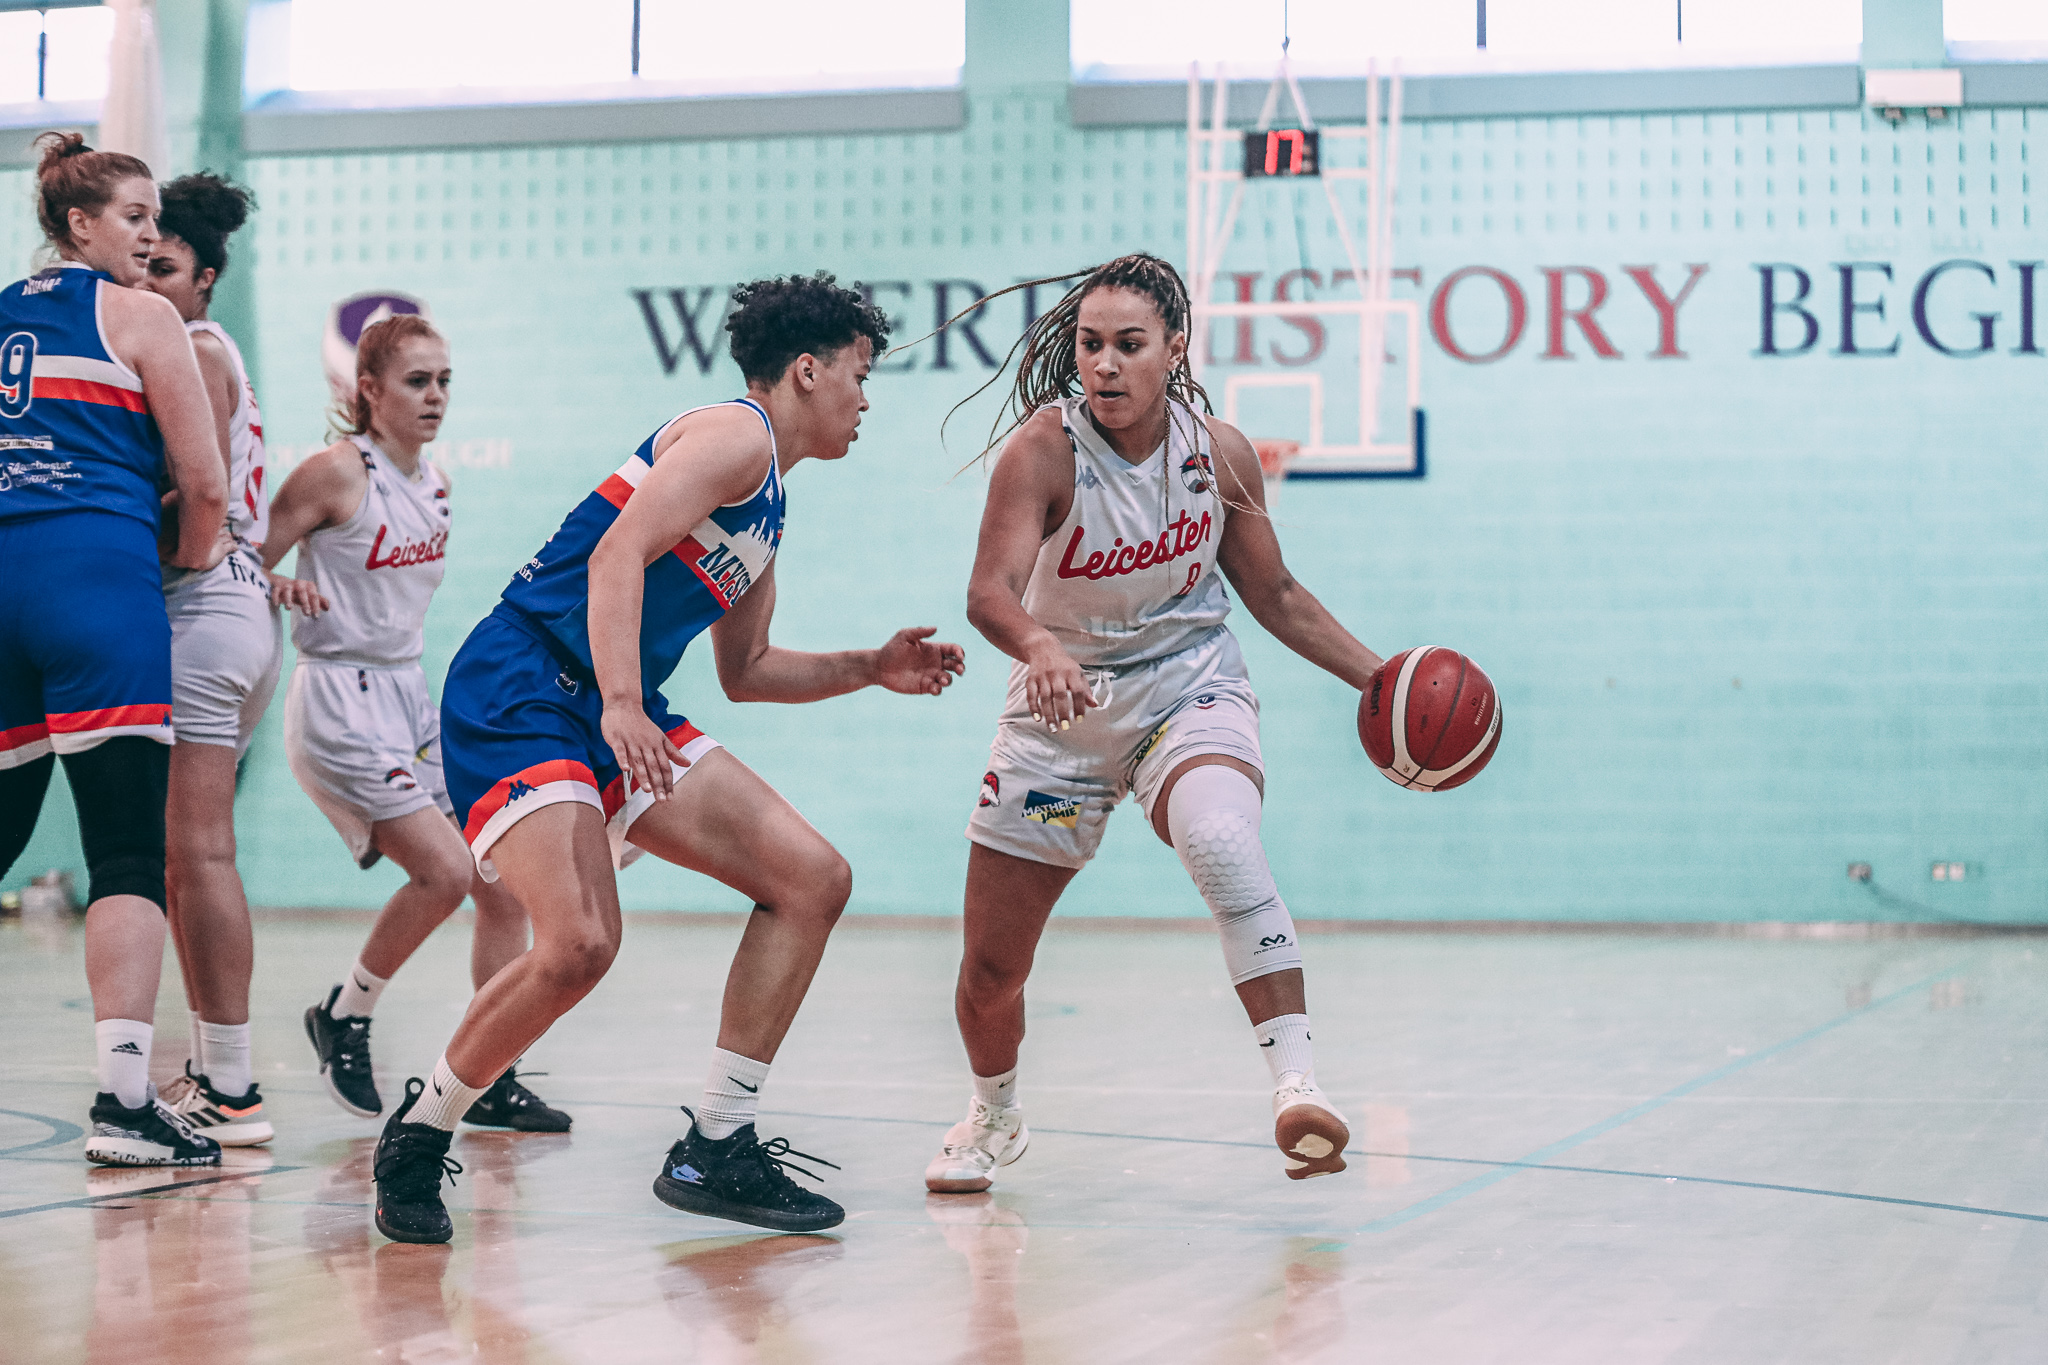 Opening Day win for the Riders against the Mystics in the WBBL CUP